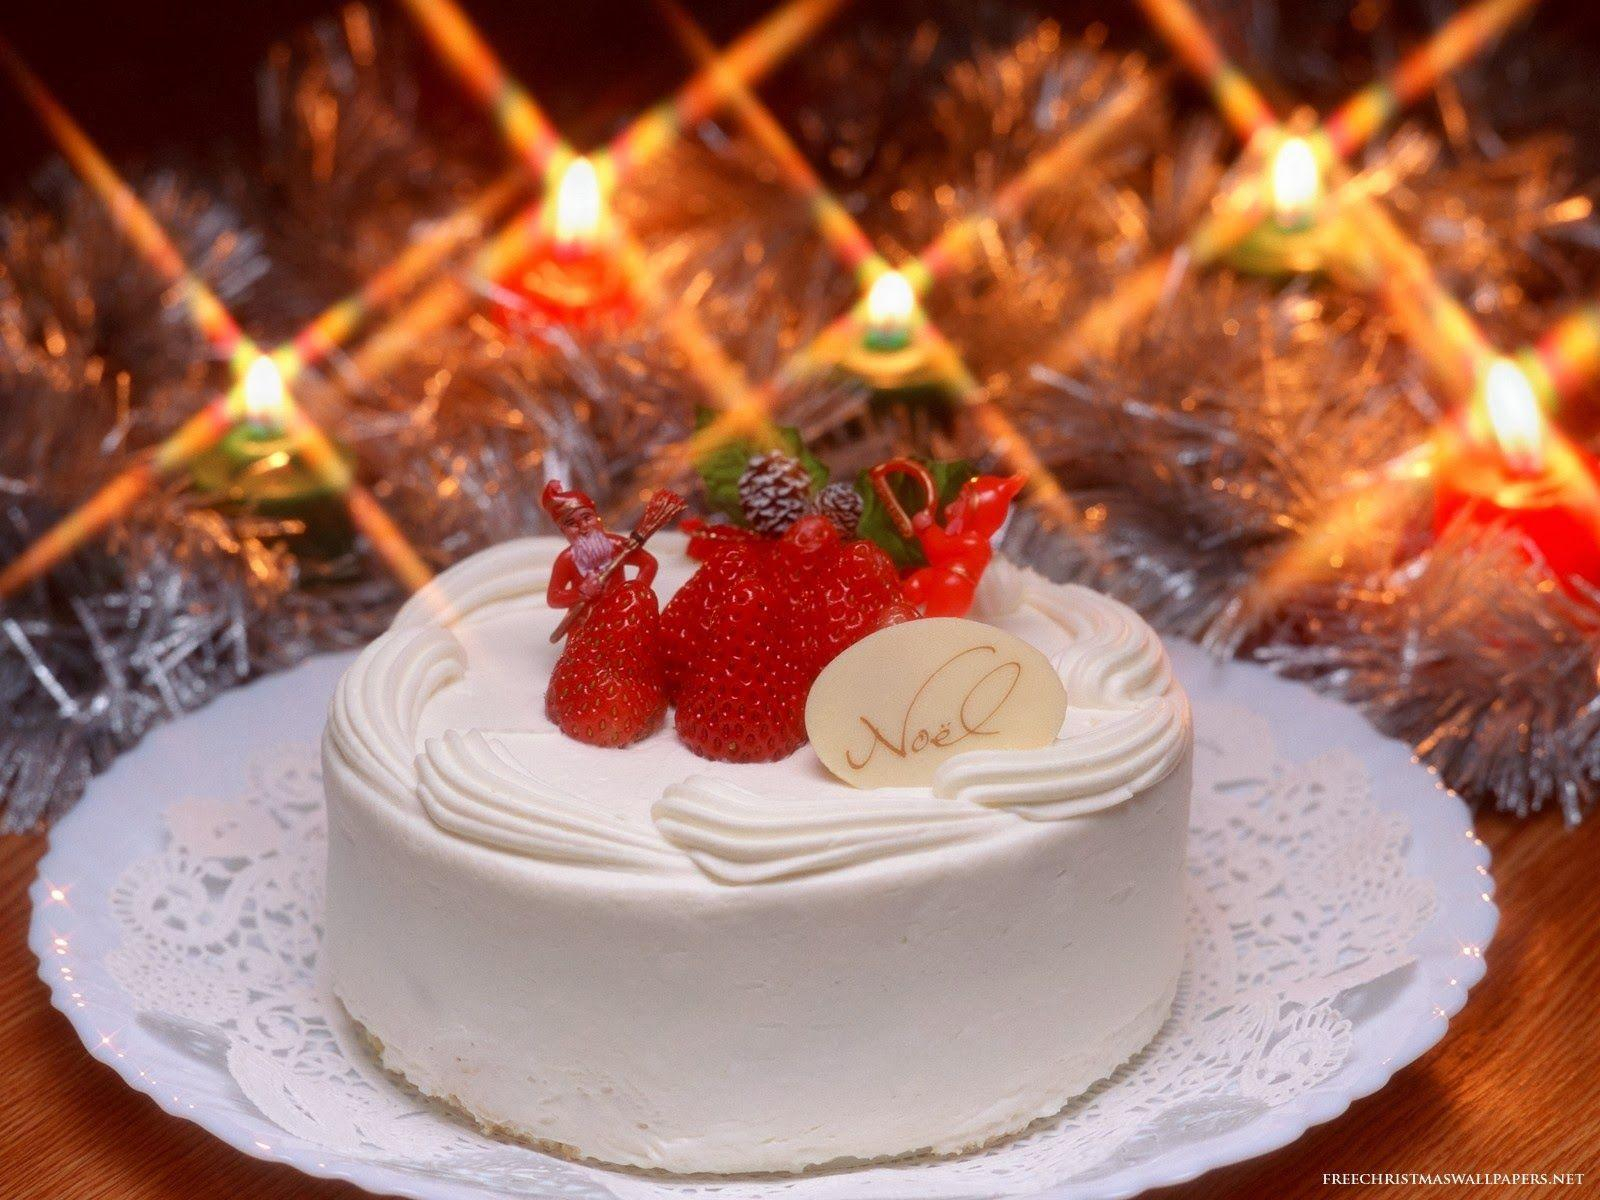 Birthday Cake Picture Free Download Wallpapers Happy Birthday Cake Wallpaper Cave